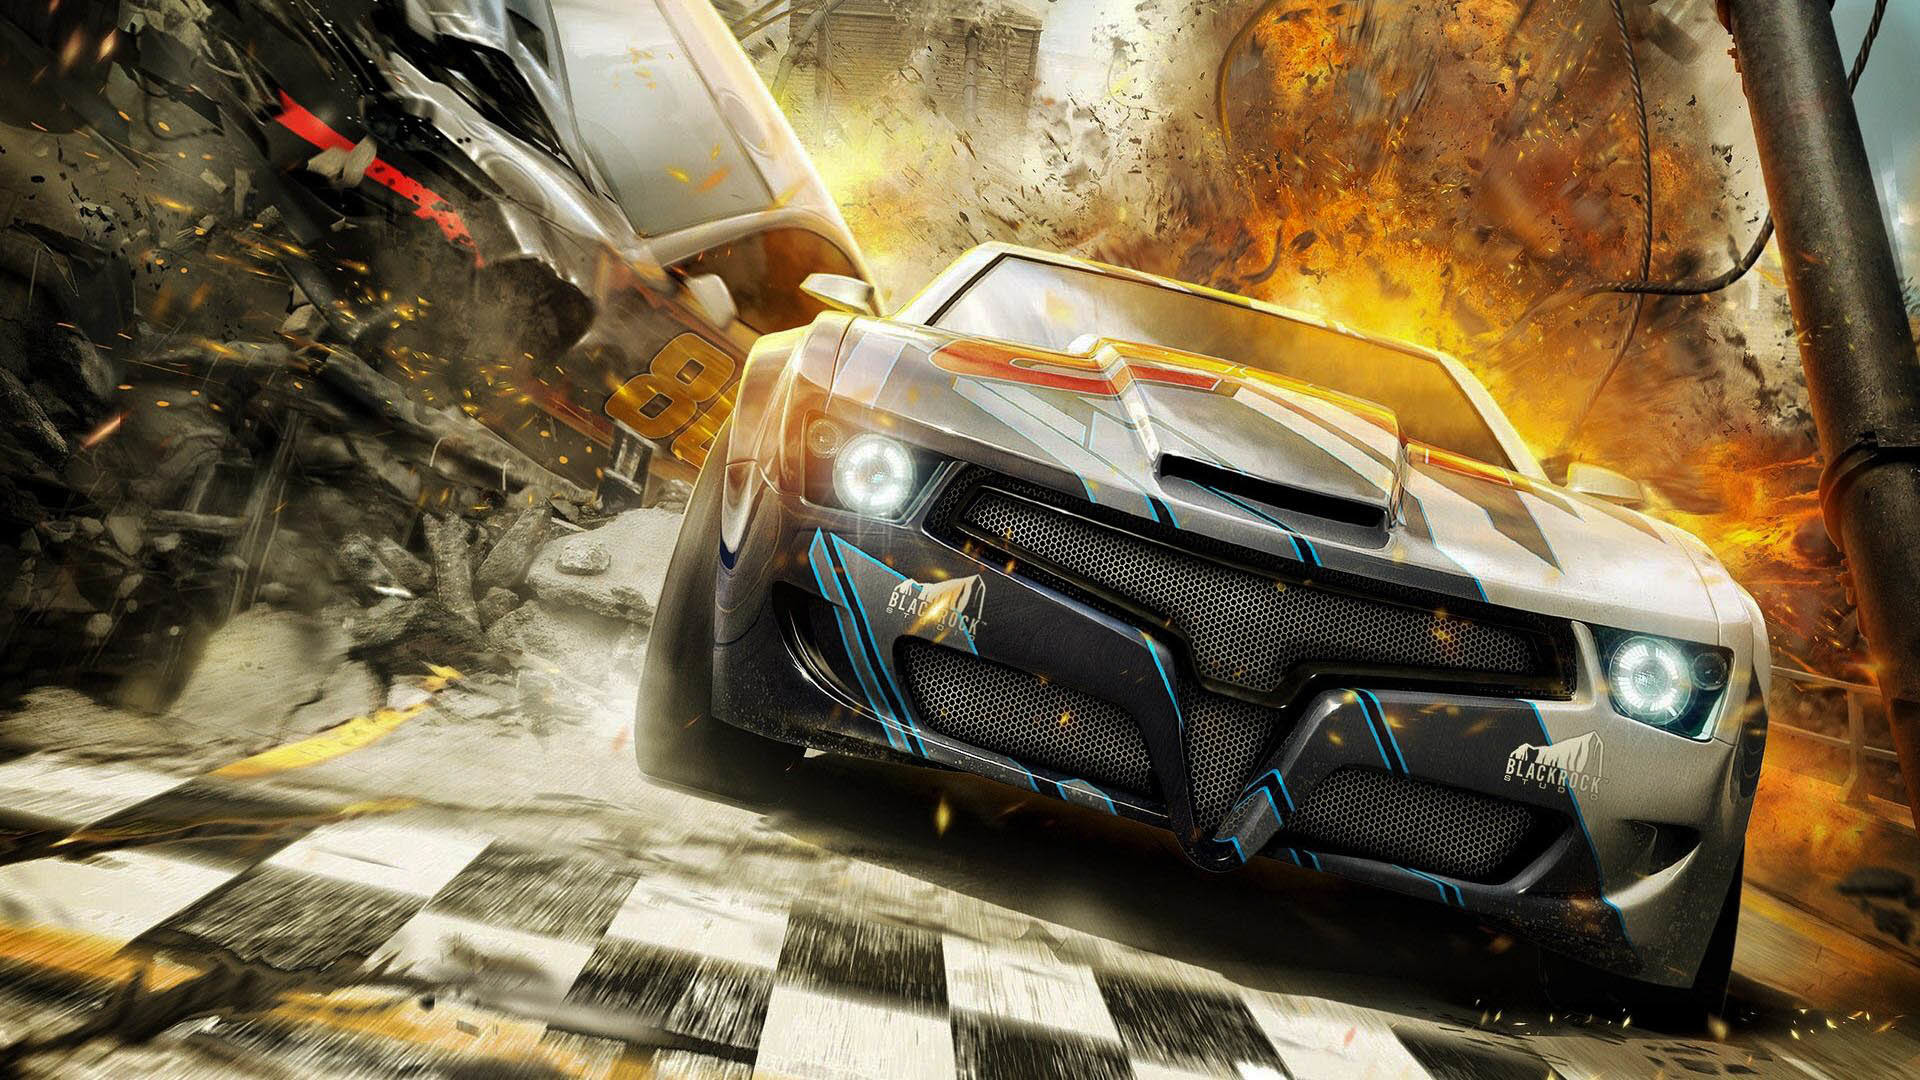 Race In Most Wanted Game | Games Wallpapers | Pinterest | Wallpaper, Gaming  wallpapers and Hd wallpaper